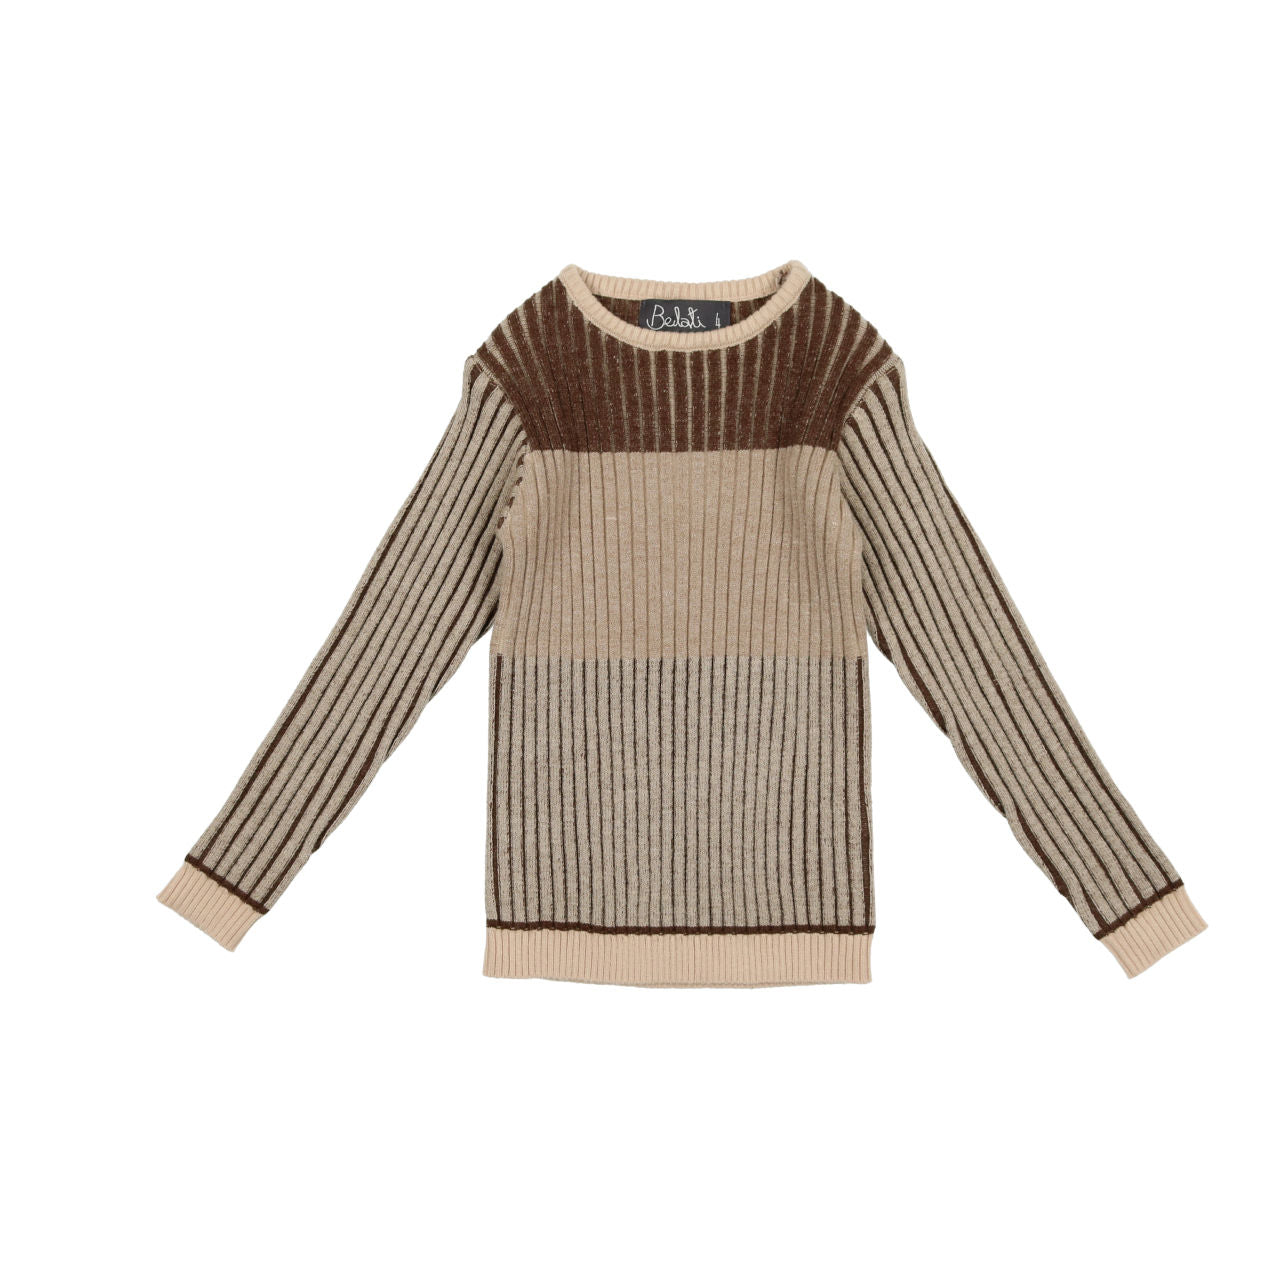 Belati Brown Multicolored Horizontal Striped Knit Sweater